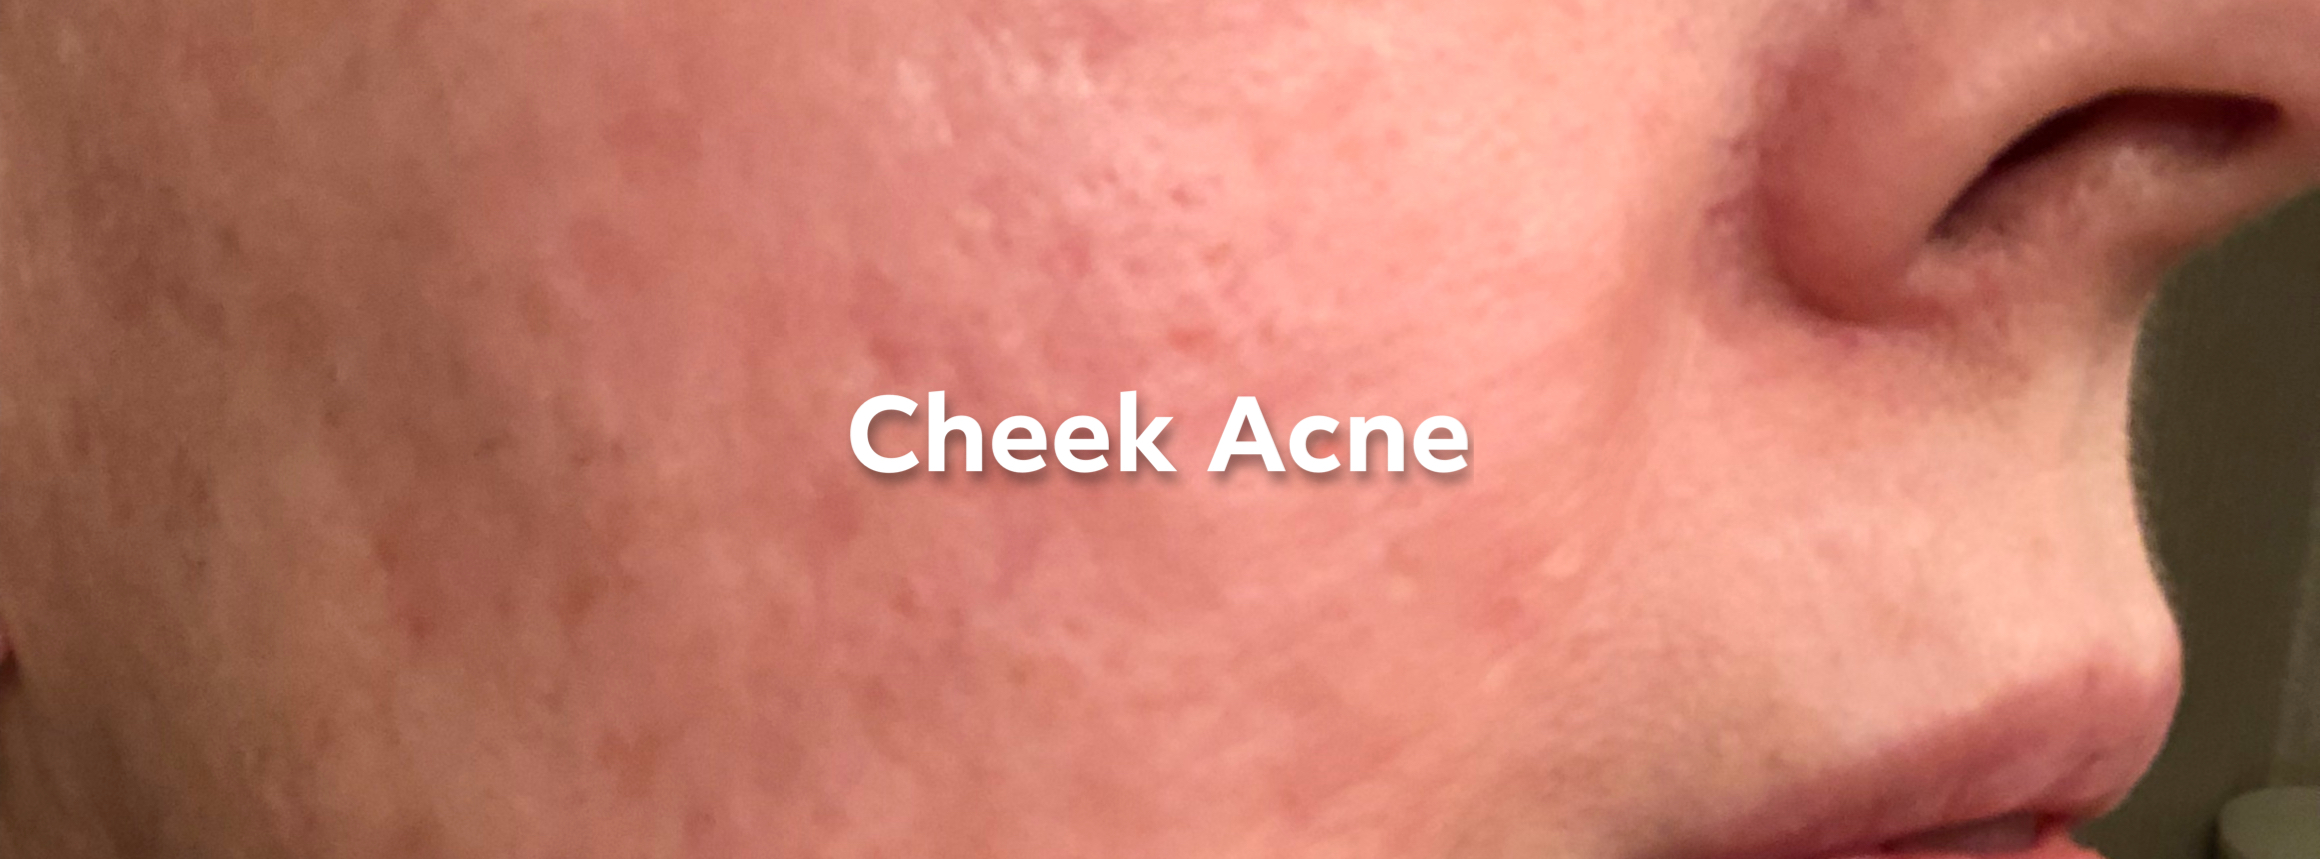 before - acne